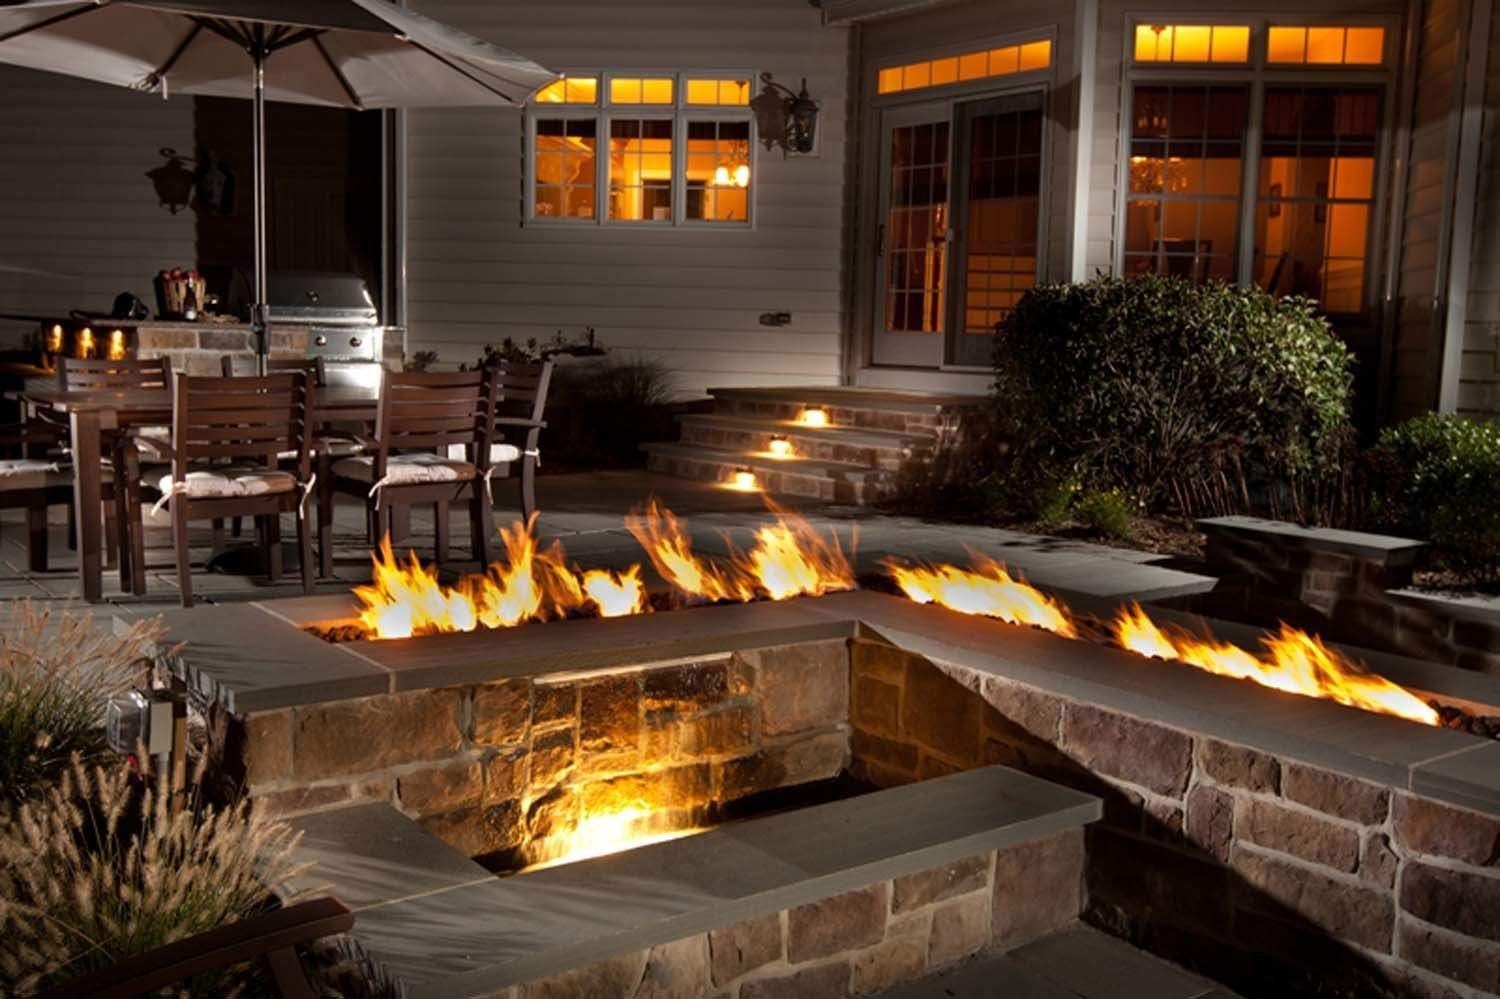 Hearth Products Controls (HPC) Stainless Steel Fire Pit Trough Pan with Linear Burner (60SSTRGH-NG), 60-Inch, Natural Gas